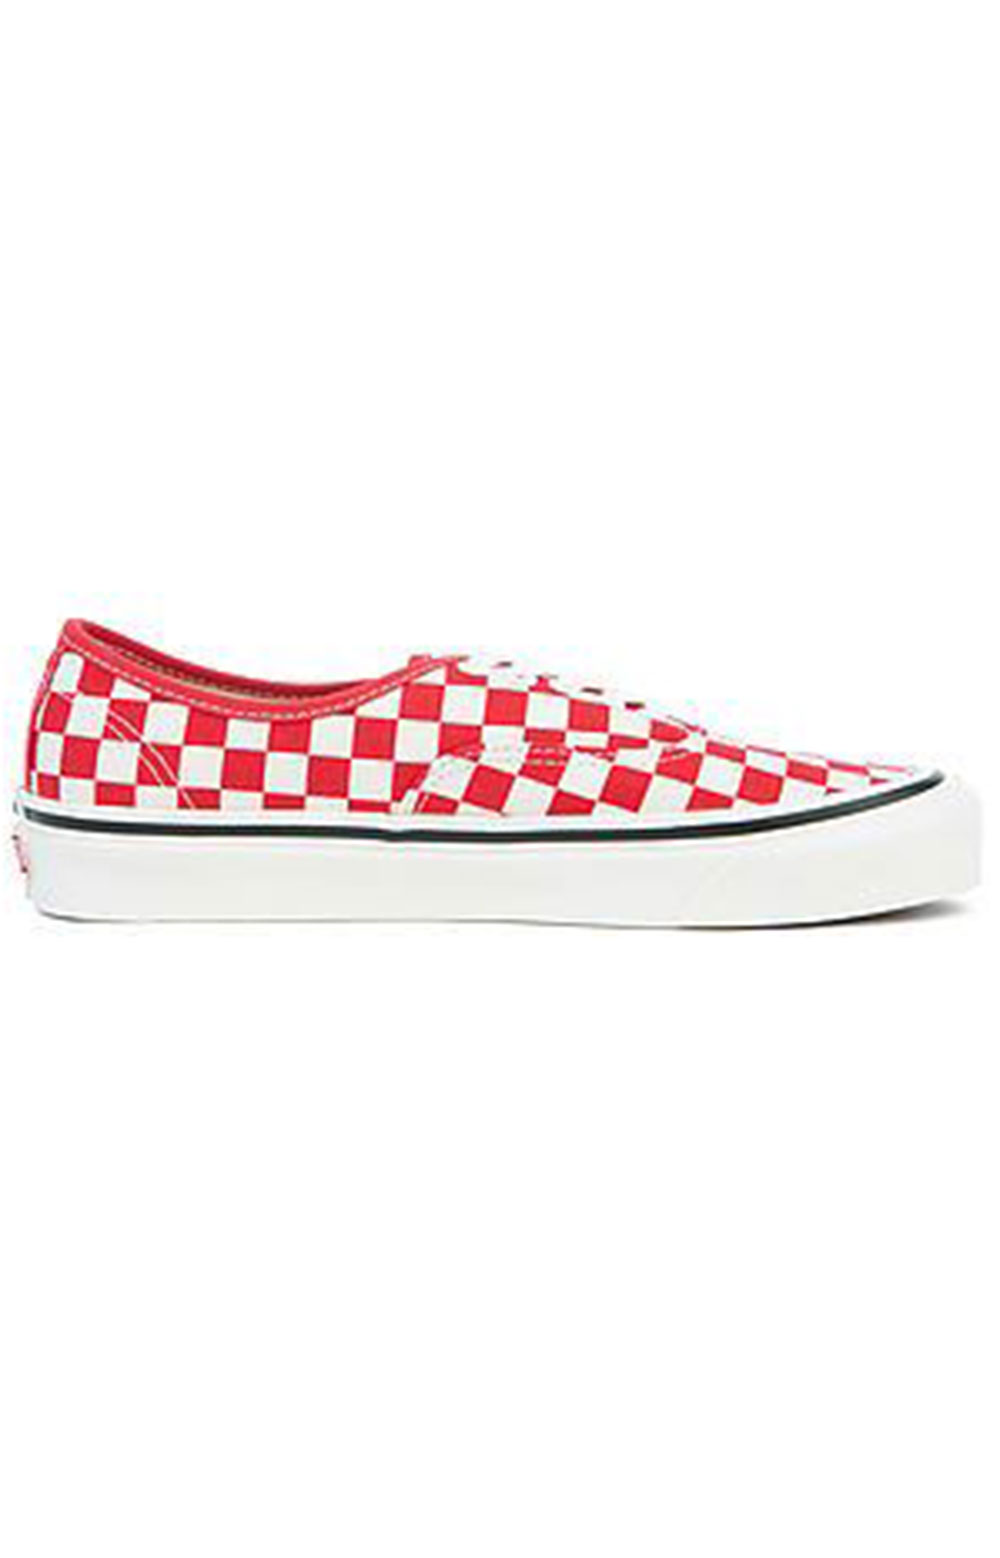 (8ENVL1) Anaheim Factory Authentic 44 DX Shoe - OG Red/White